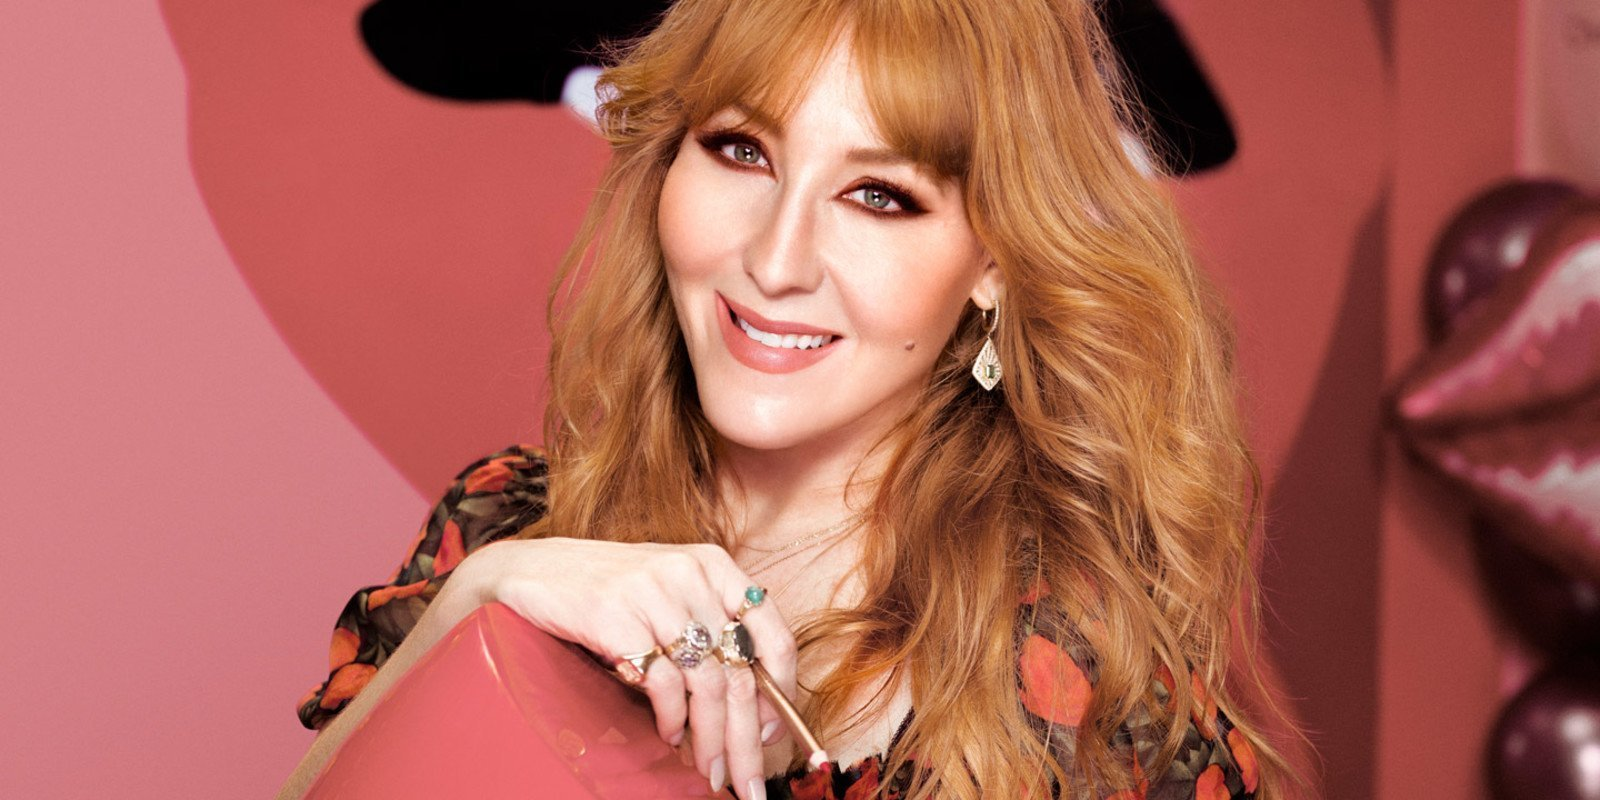 Beauty Industry Insiders Applaud Puig's Purchase Of Charlotte Tilbury